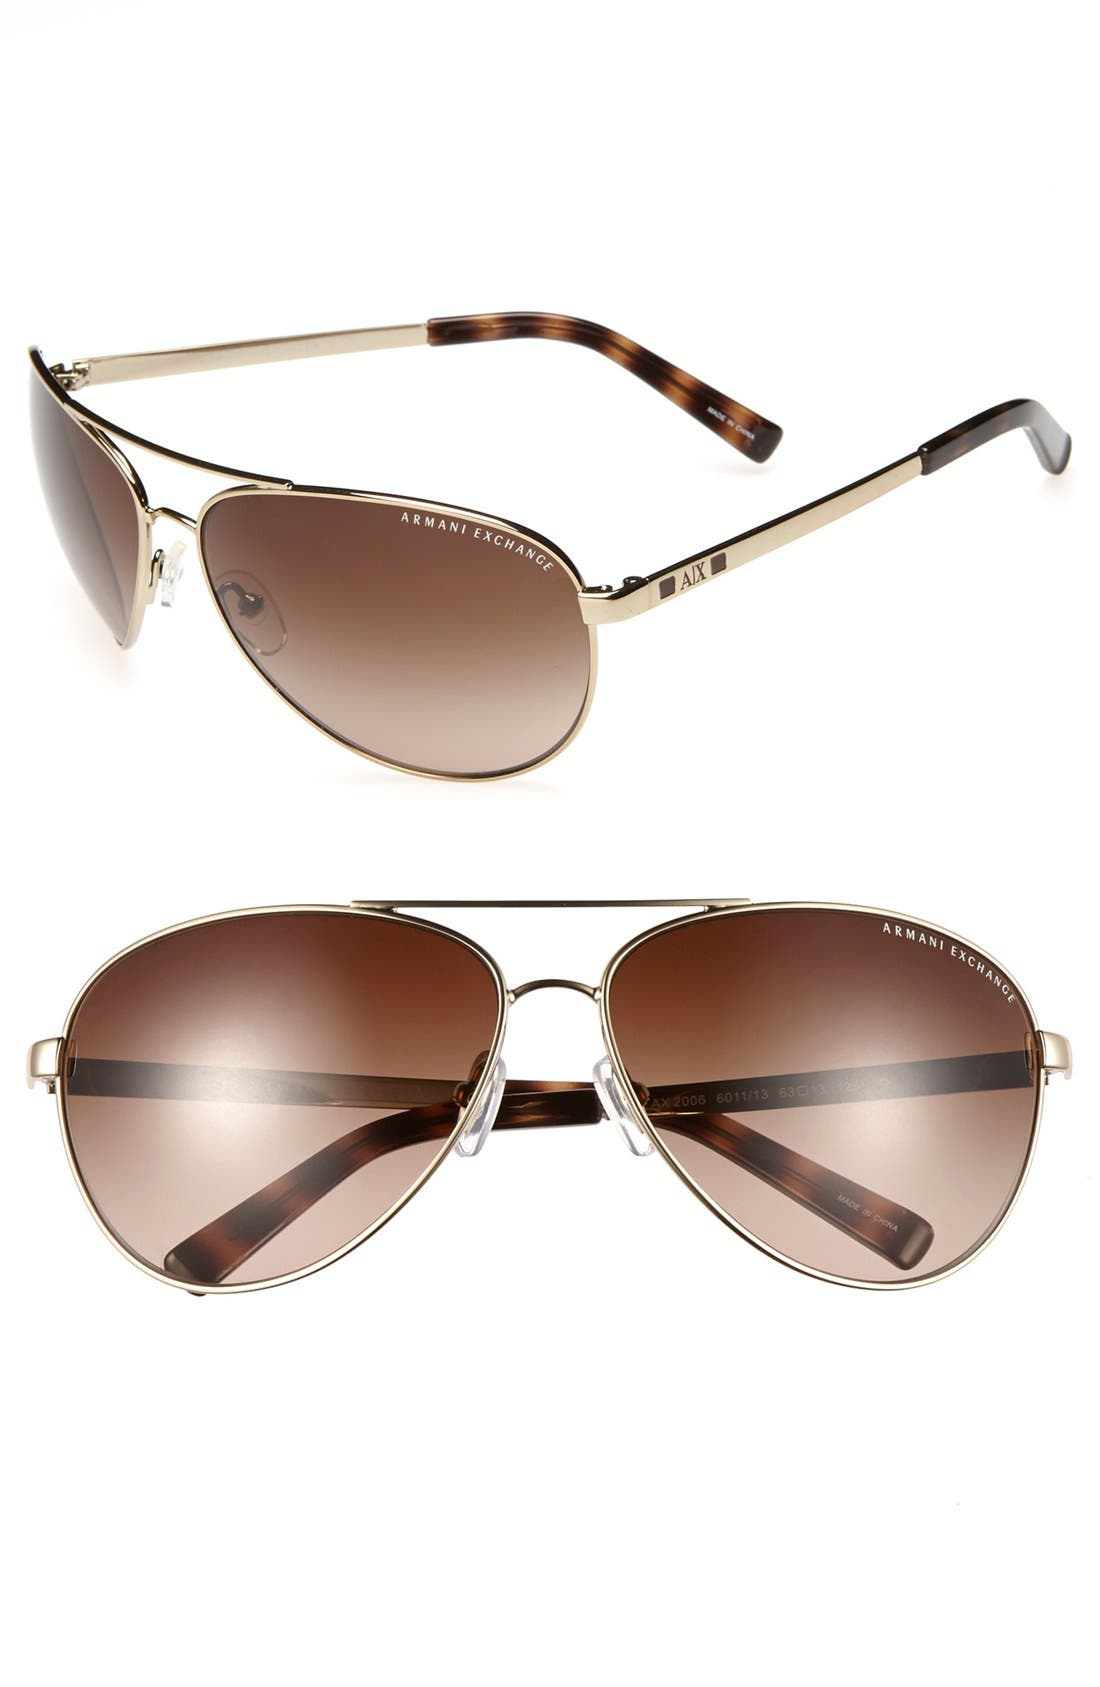 Main Image - AX Armani Exchange 63mm Aviator Sunglasses